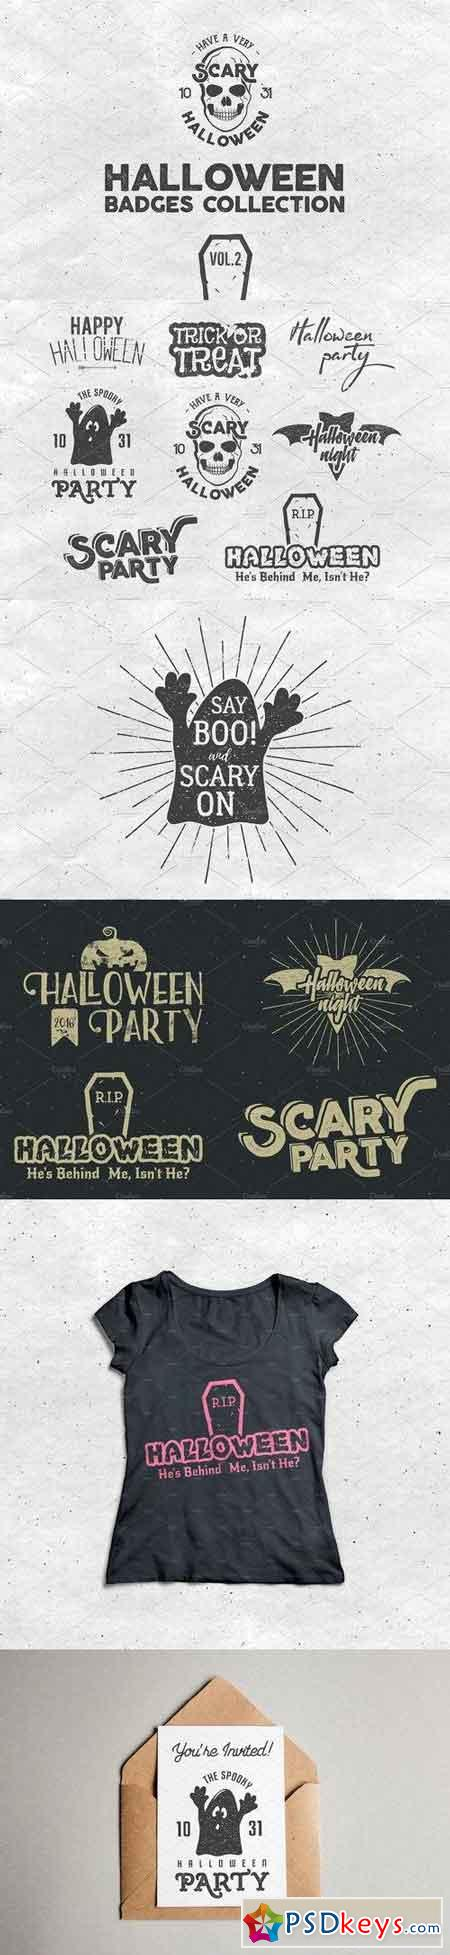 halloween badges set vol2 918373 - Halloween 2 2017 Torrent